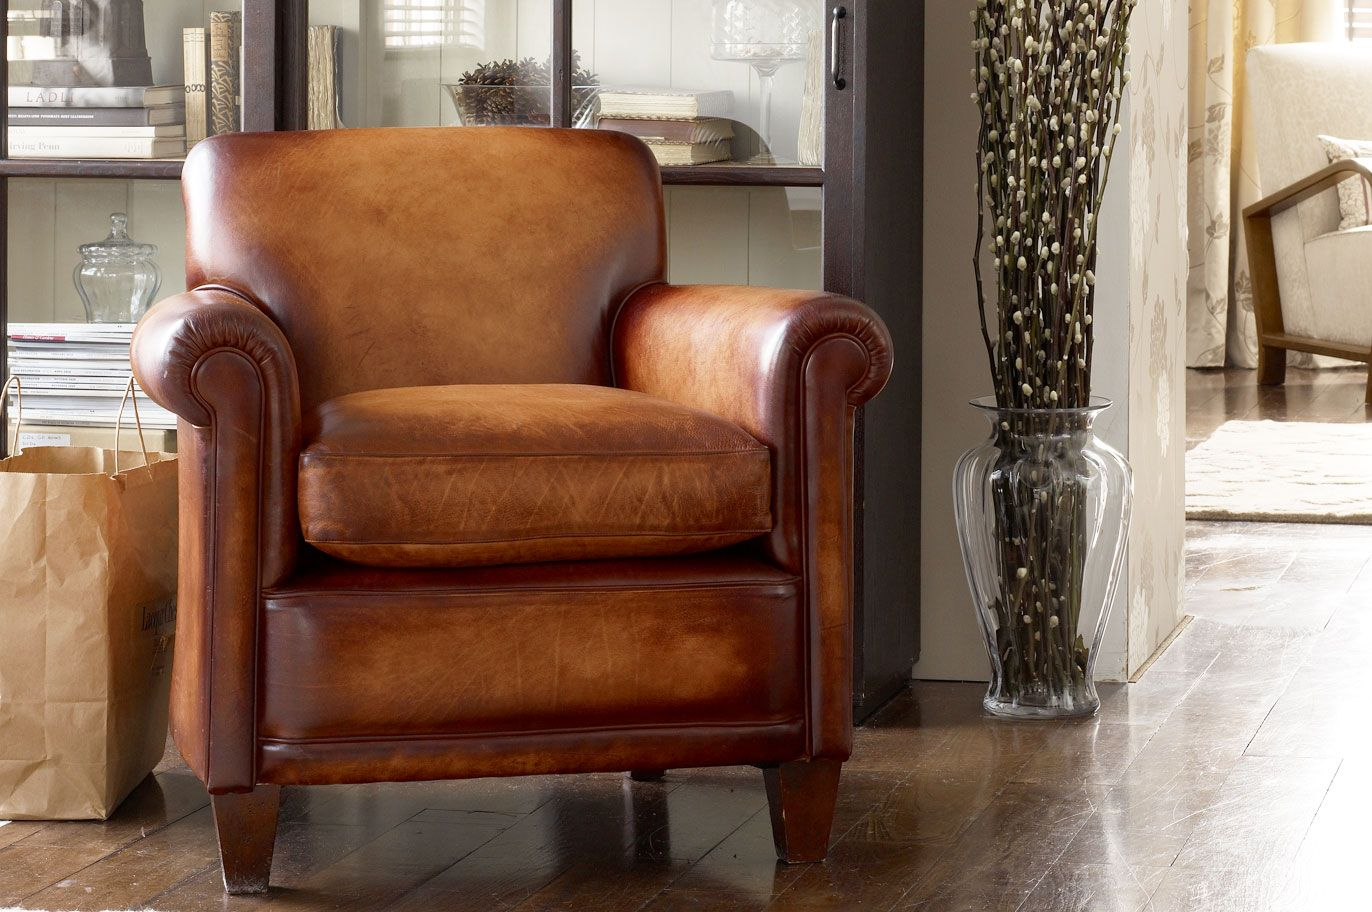 Burlington leather chair laura ashley again if anyone 39 s feeling particularly benevolent - Laura ashley office chair ...